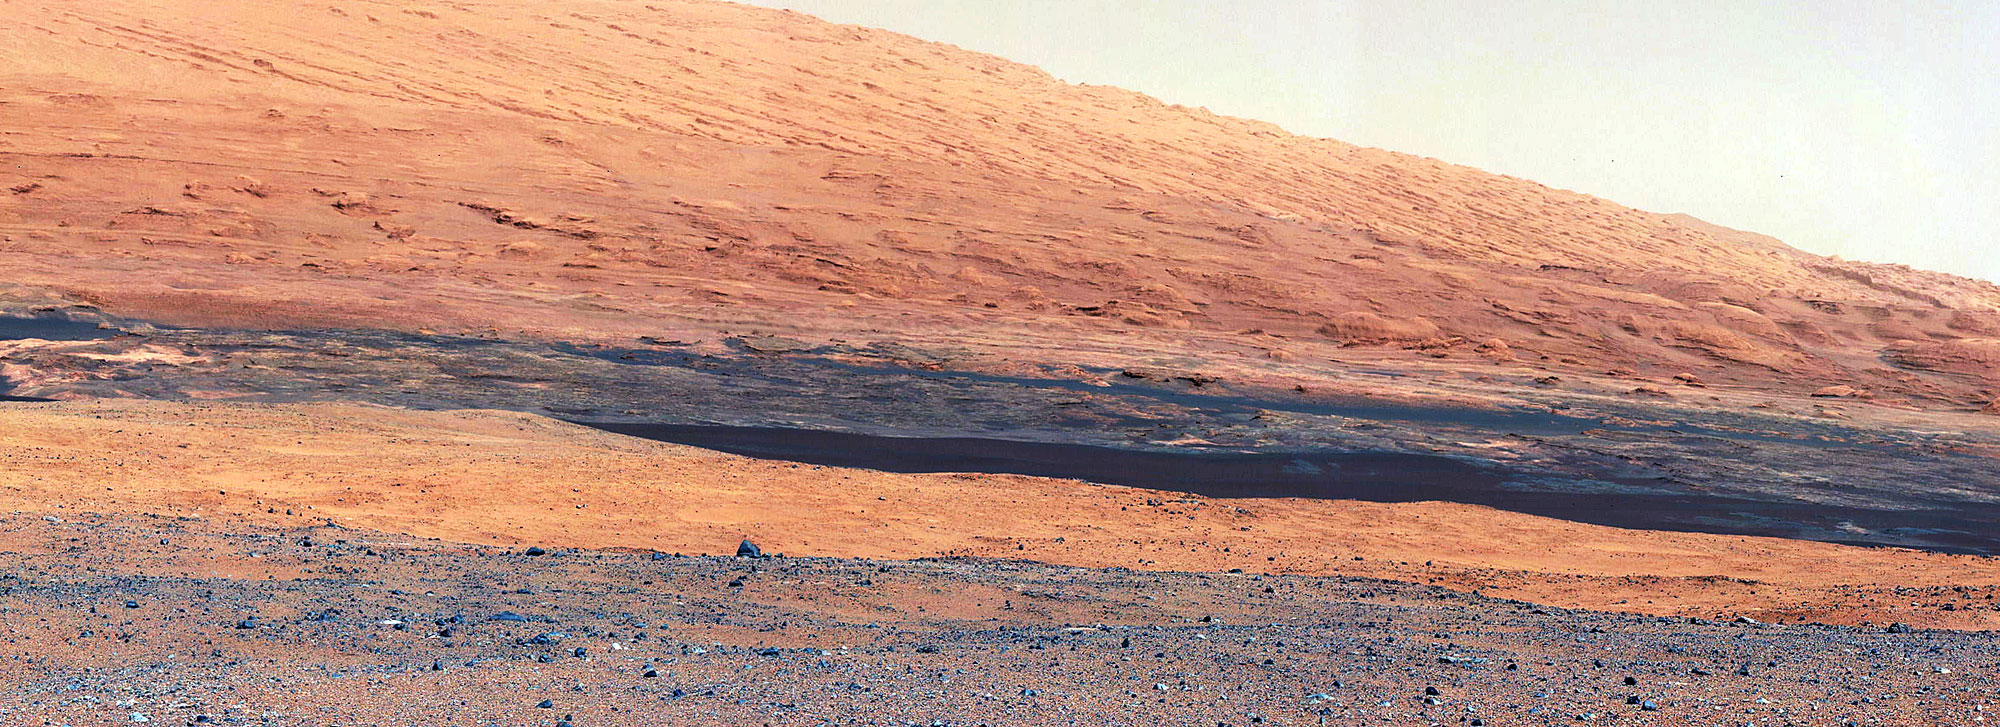 Methane on Mars Short Course